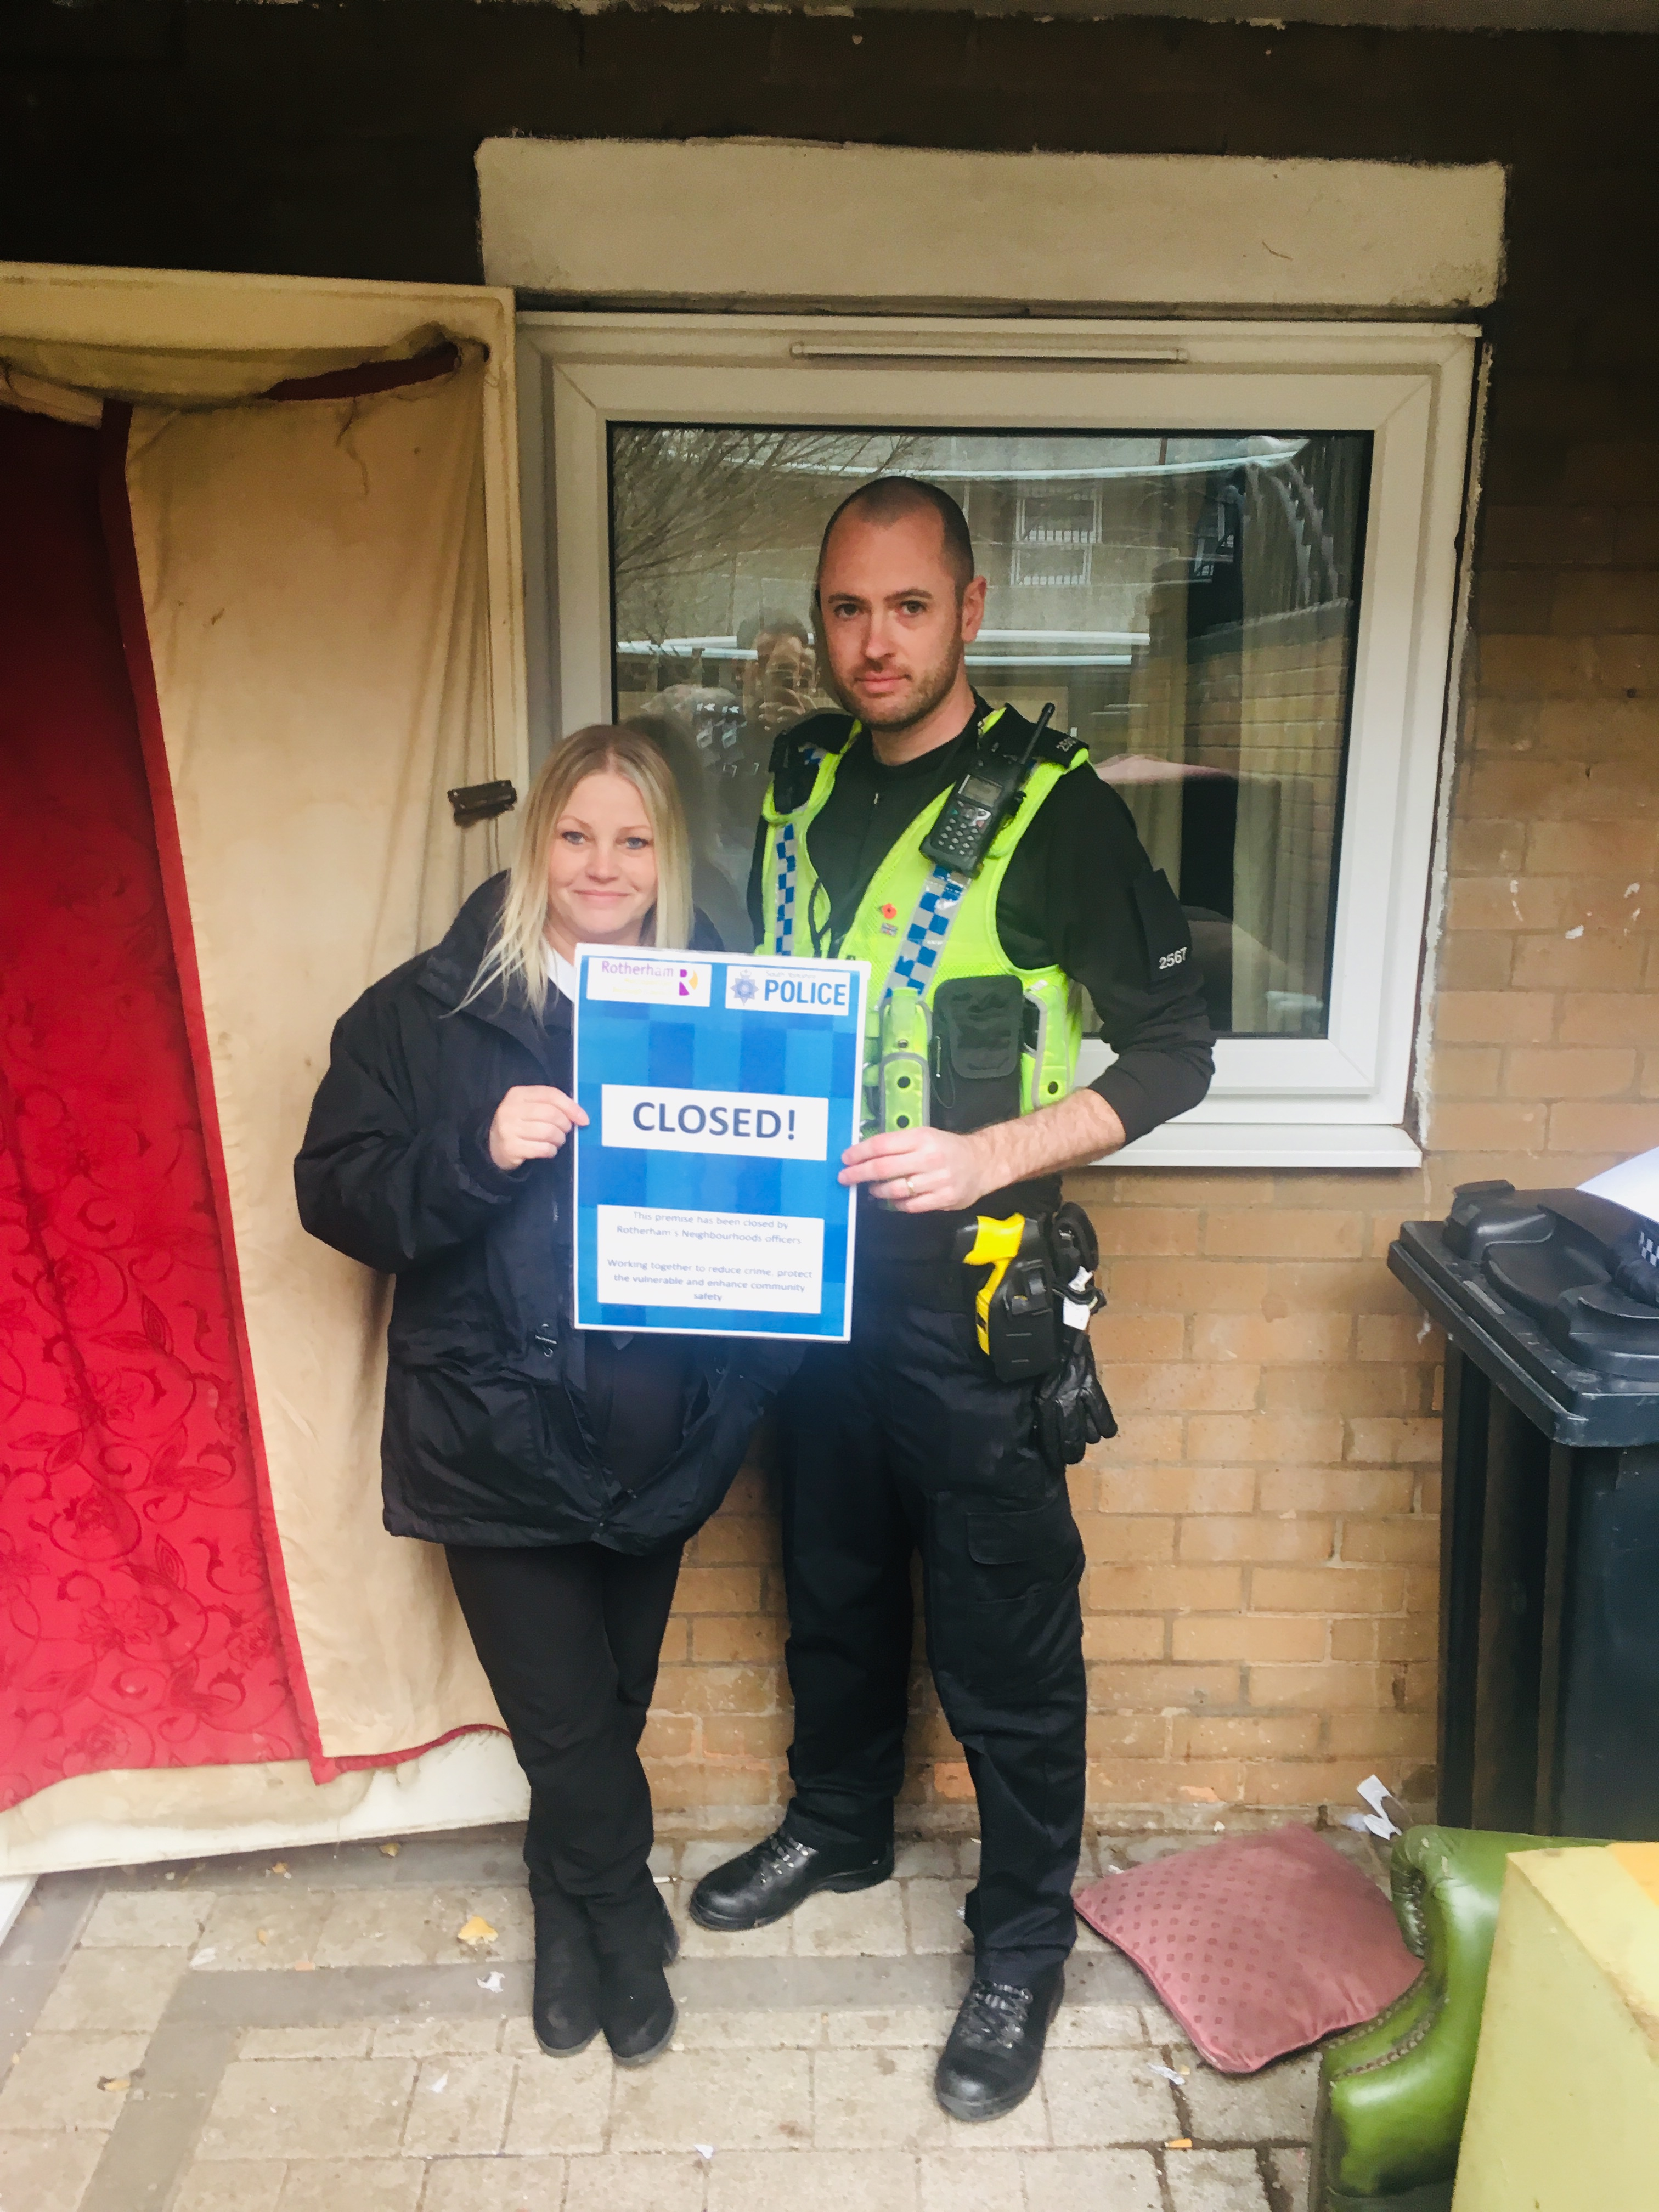 PC Robson from Central Rotherham Neighbourhood Poling Team with RMBC Housing Officer Joanne Russell